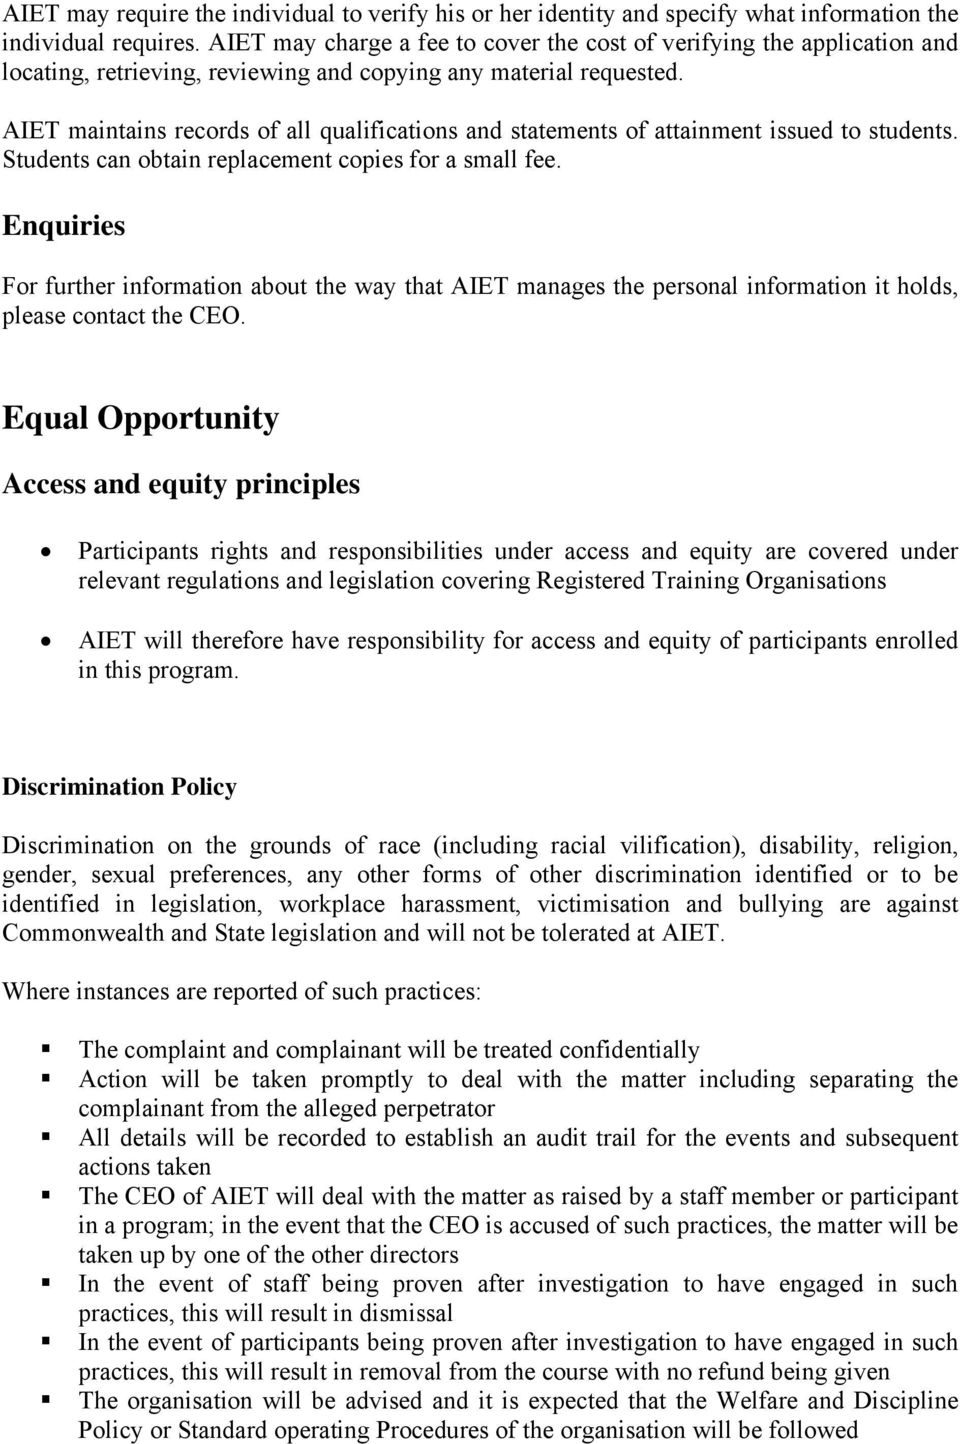 AIET maintains records of all qualifications and statements of attainment issued to students. Students can obtain replacement copies for a small fee.